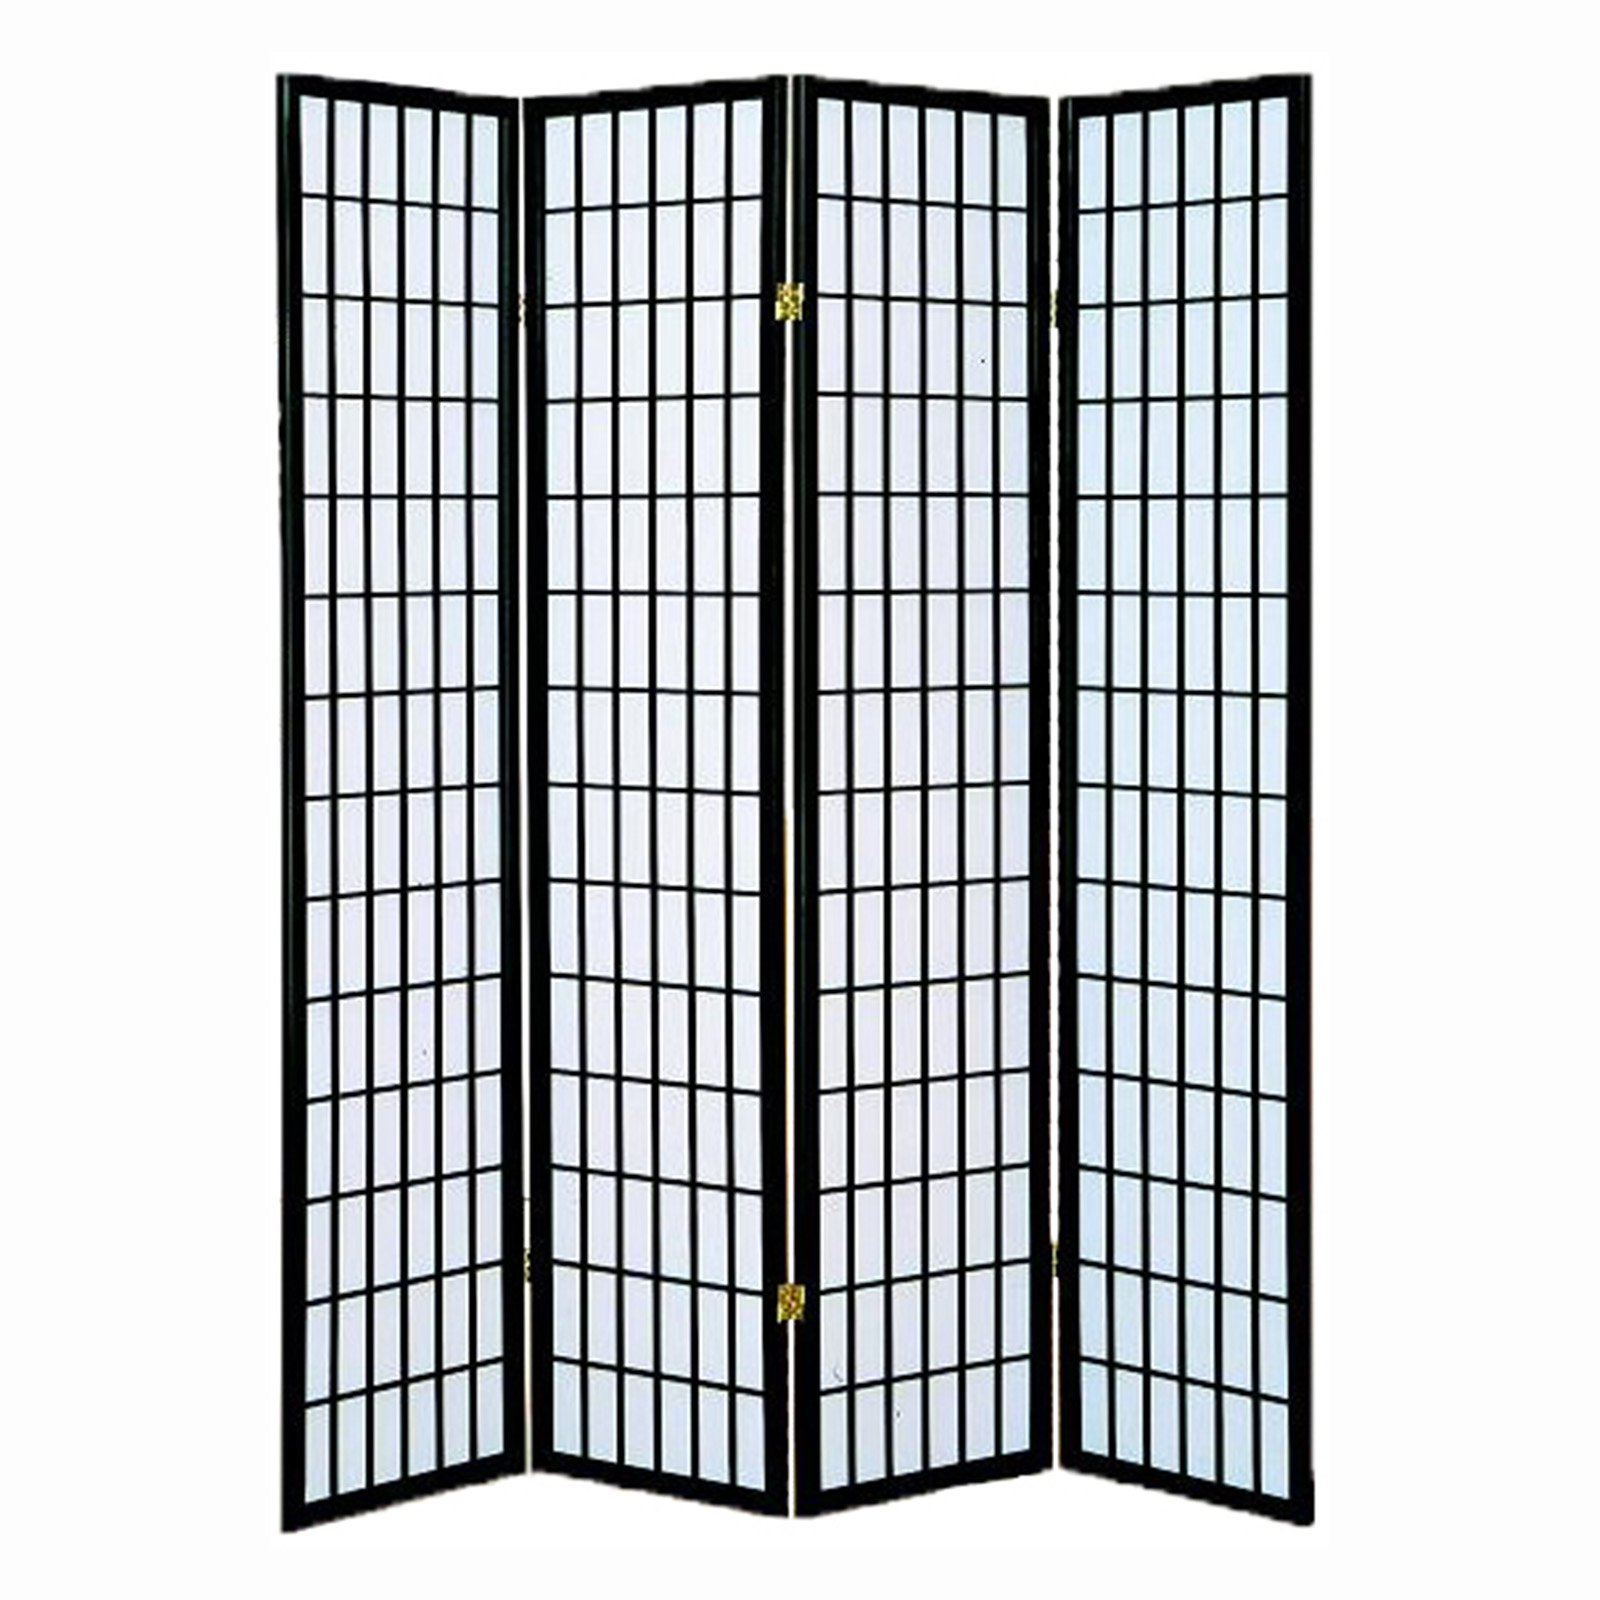 Best Choice Products 4 Panel Folding Room Divider Privacy Screen Home Decoration Accent Black